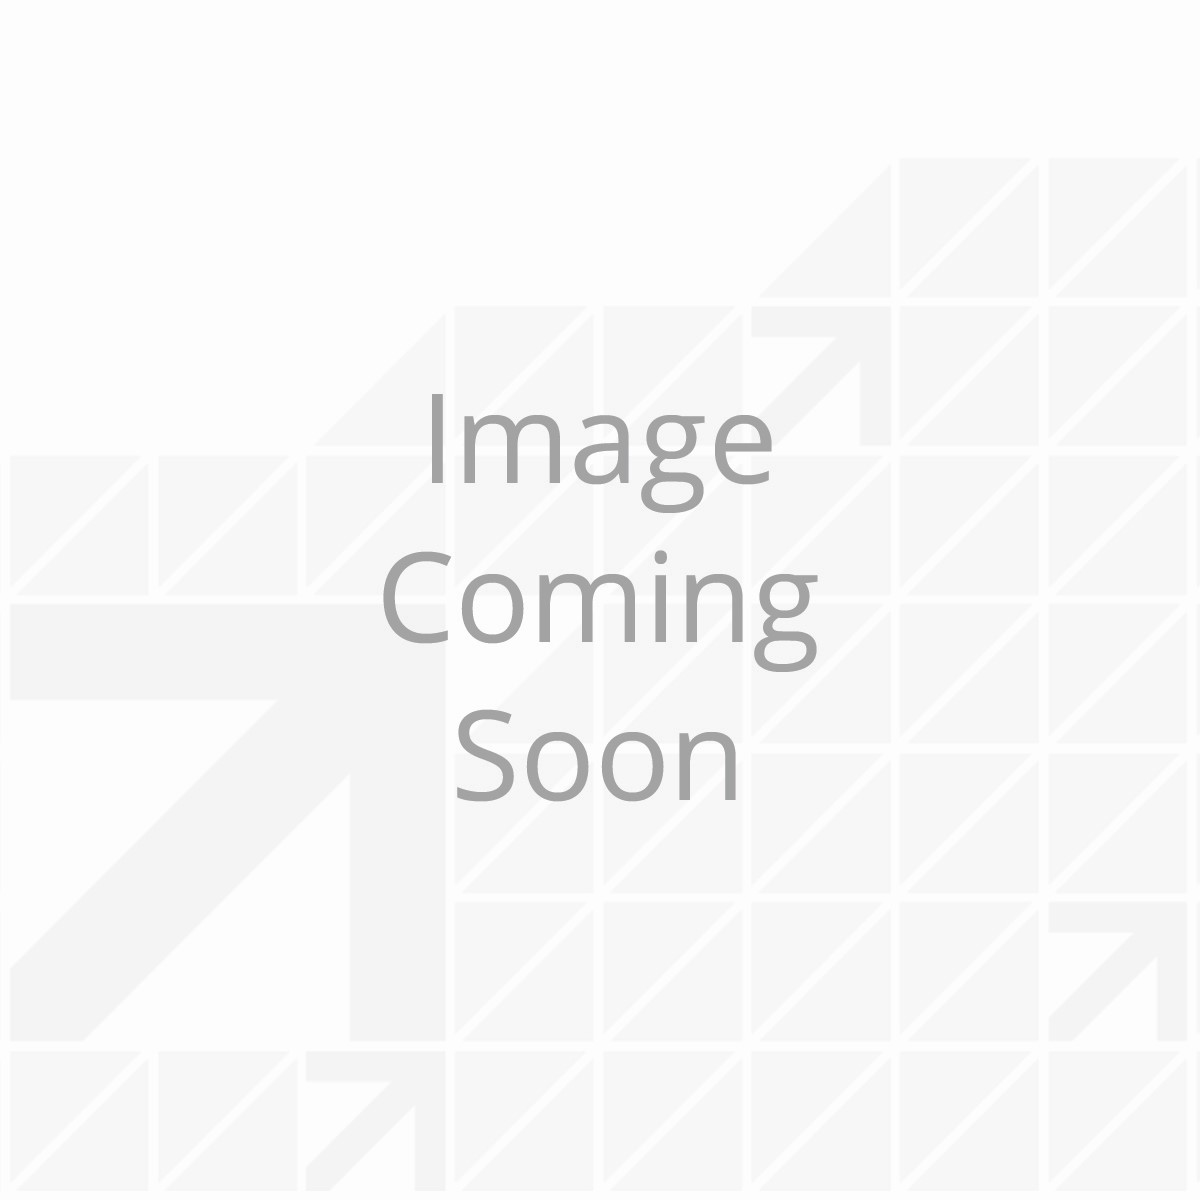 Inverted Dual Rack Repair Kit - Fixed Side (Black)